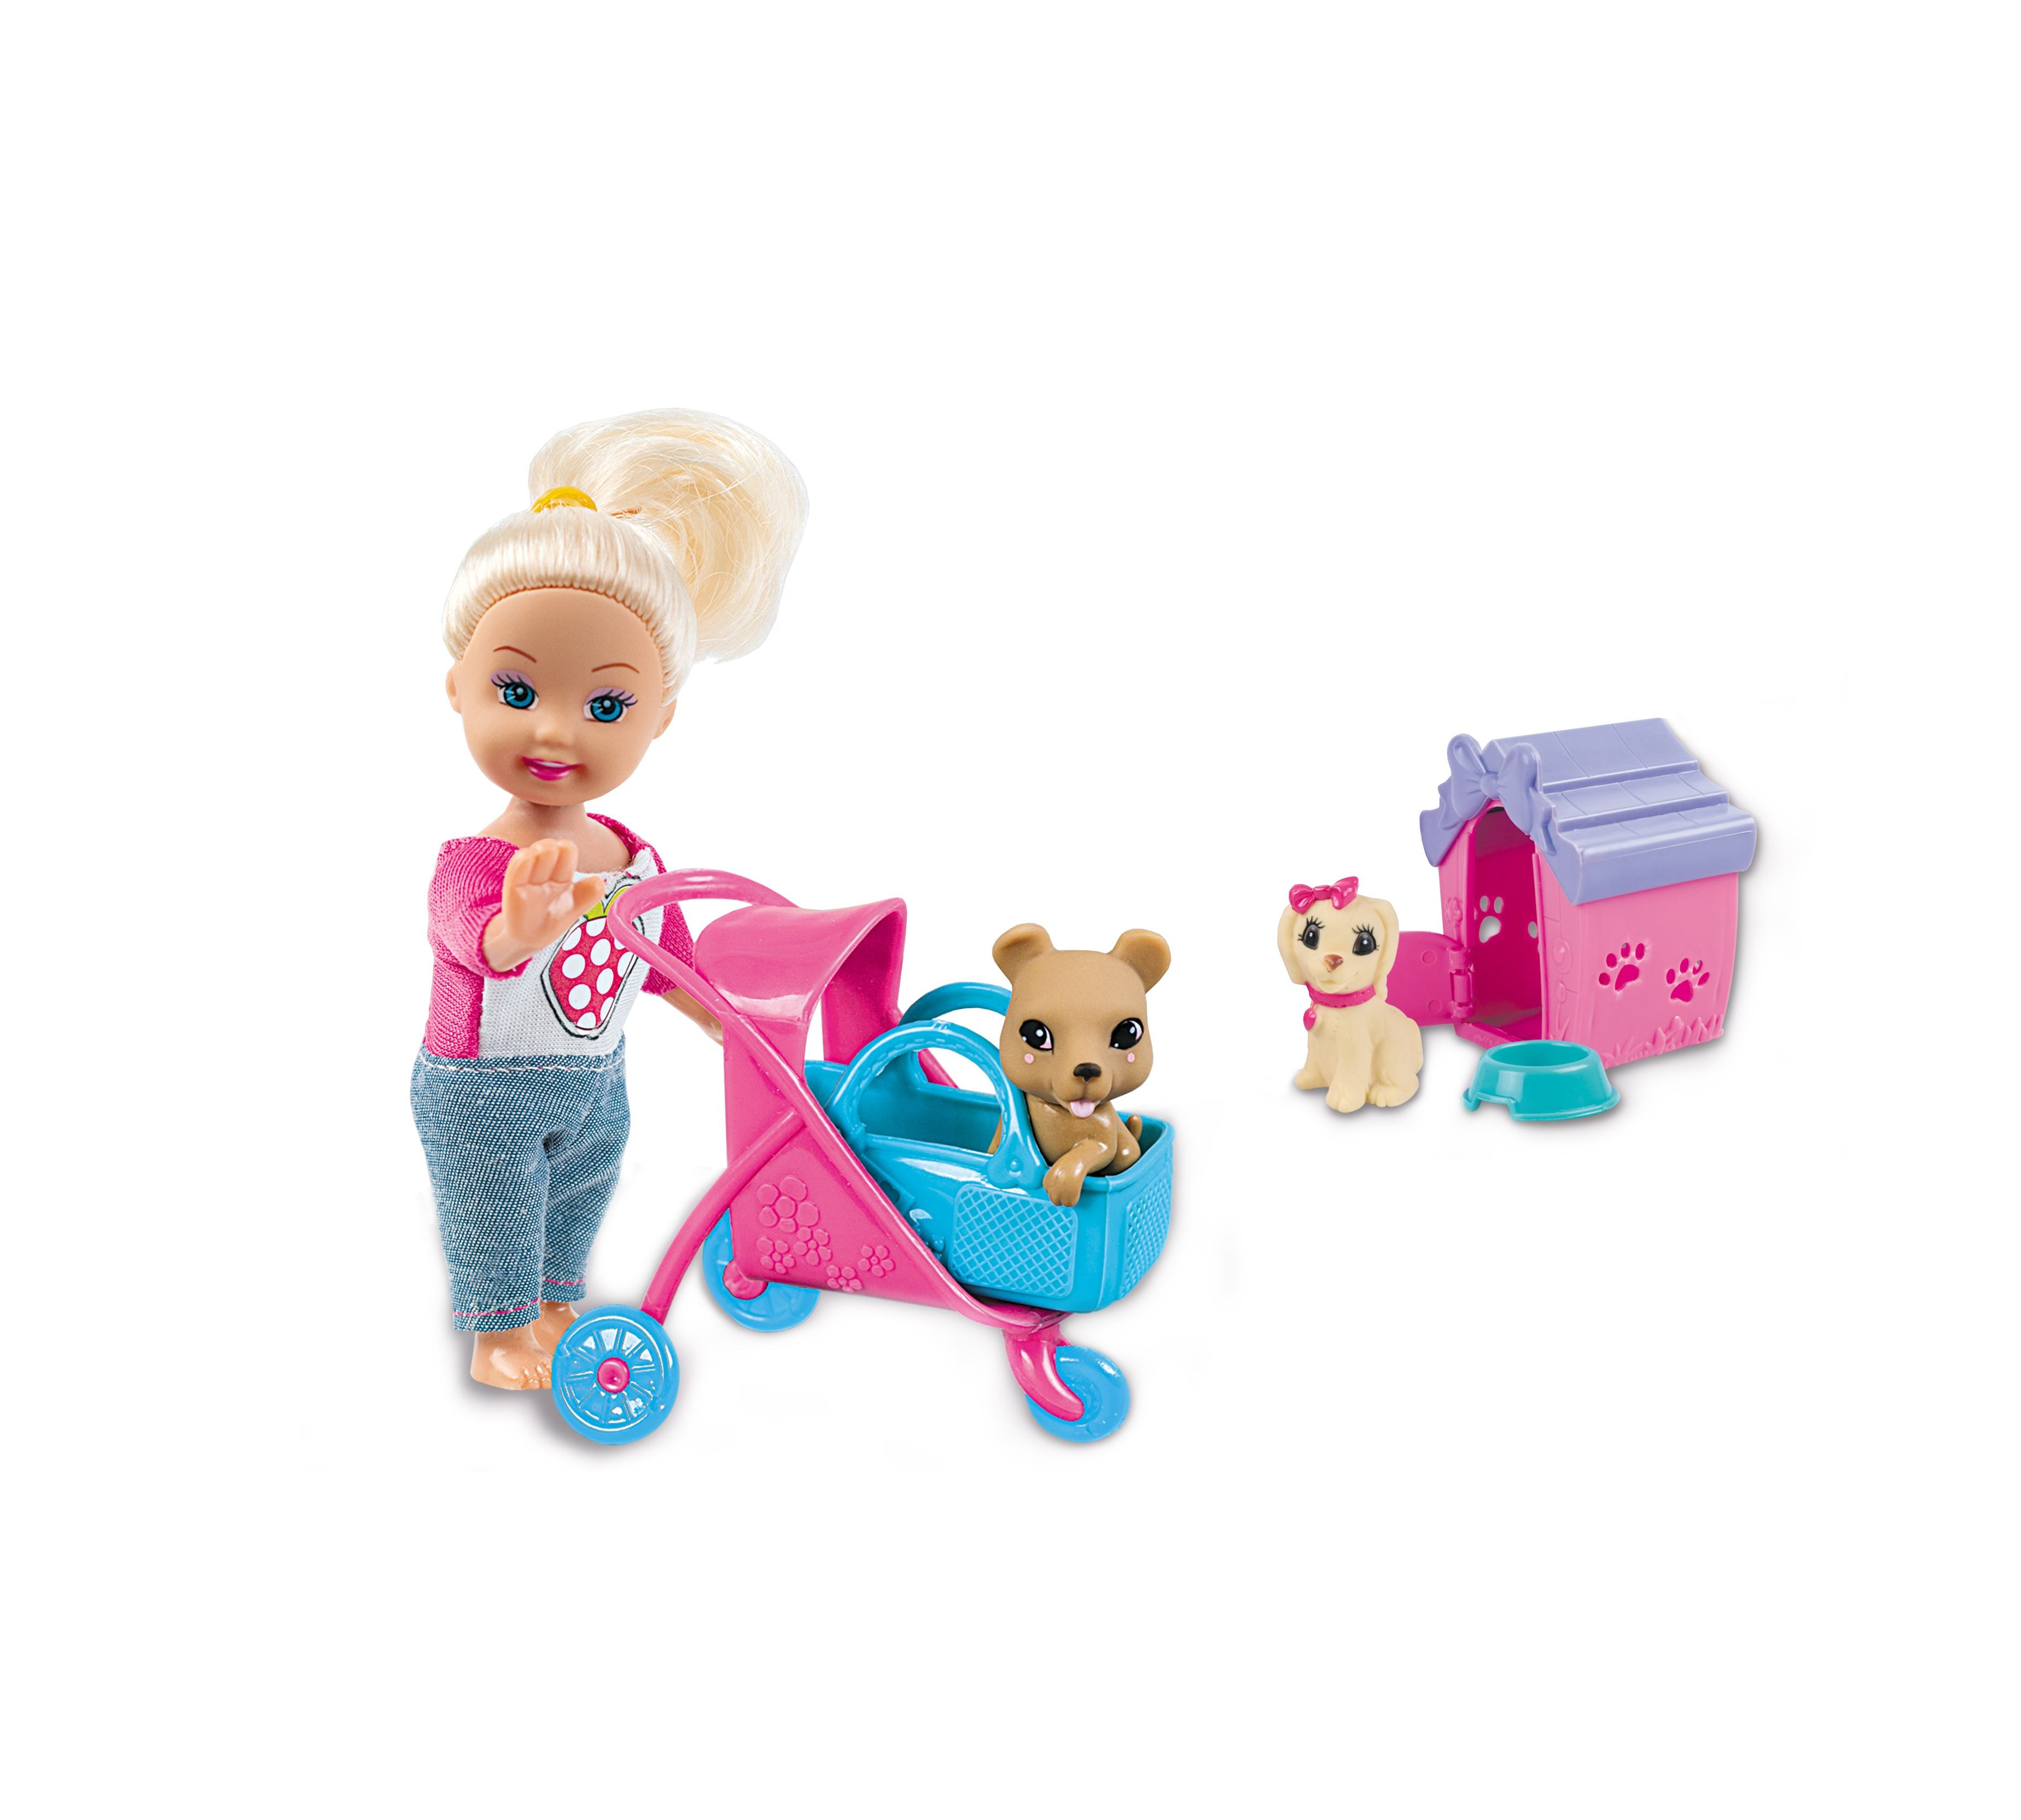 Stroll Play Pups Playset with Blonde Doll 11.5cm 2 Puppies Plastic Stroller Accessories, Small Baby Doll Gift Set For Girl Kids